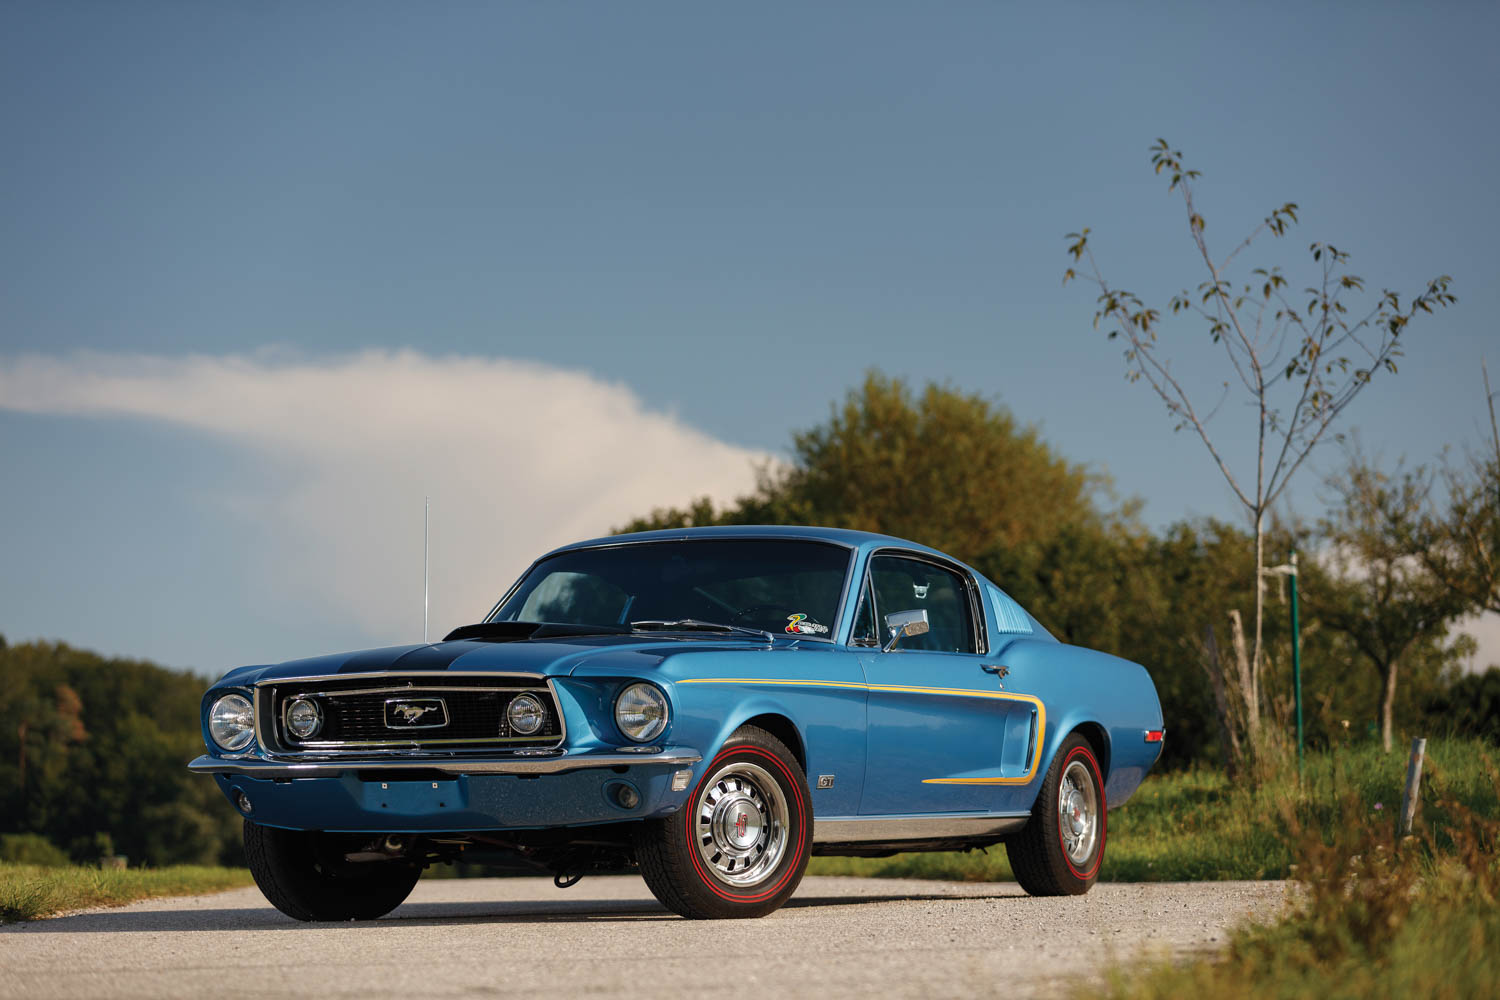 428 Cobra Jet invades RM Sotheby's London auction with muscle car brawn thumbnail